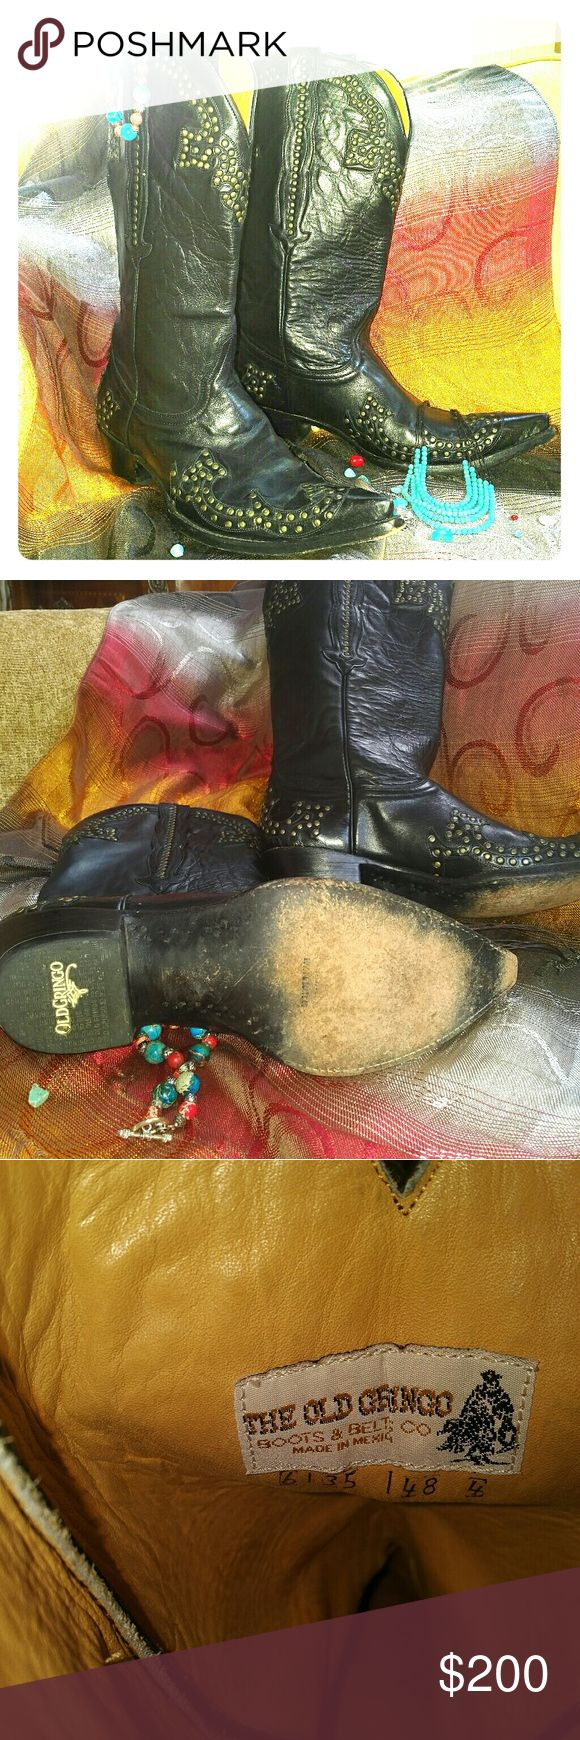 Old Gringo Boots CHICA! Gorgeous Old Gringo Black Studded Boots! gently worn and in beautiful condition! Old Gringo Shoes Heeled Boots